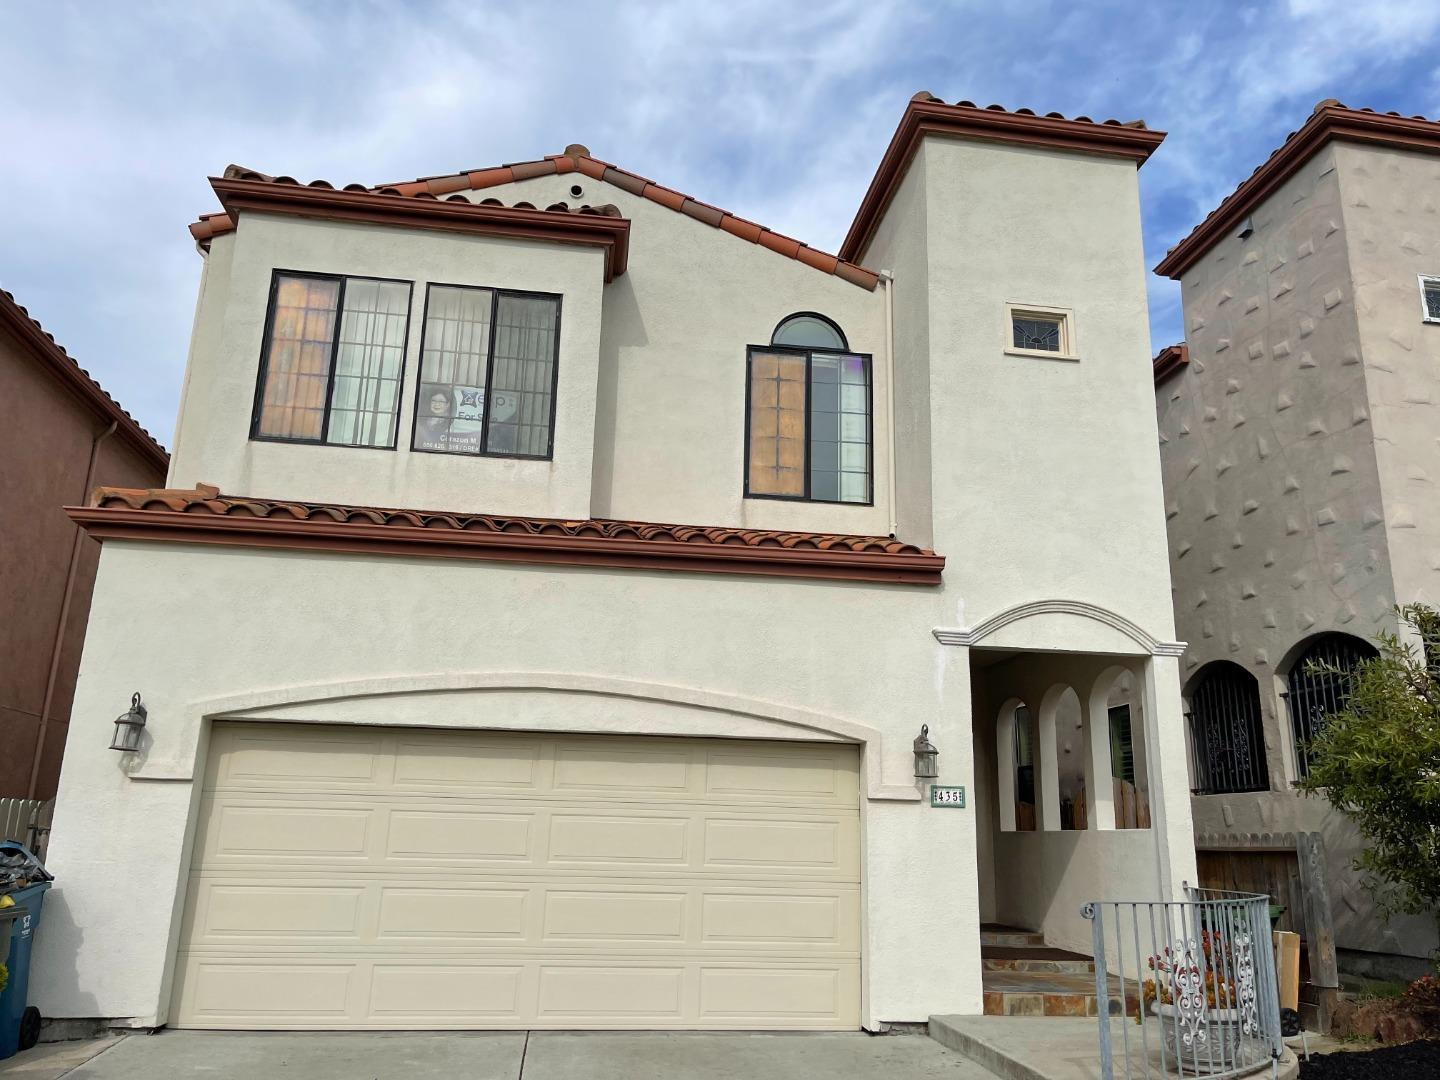 House In Colma